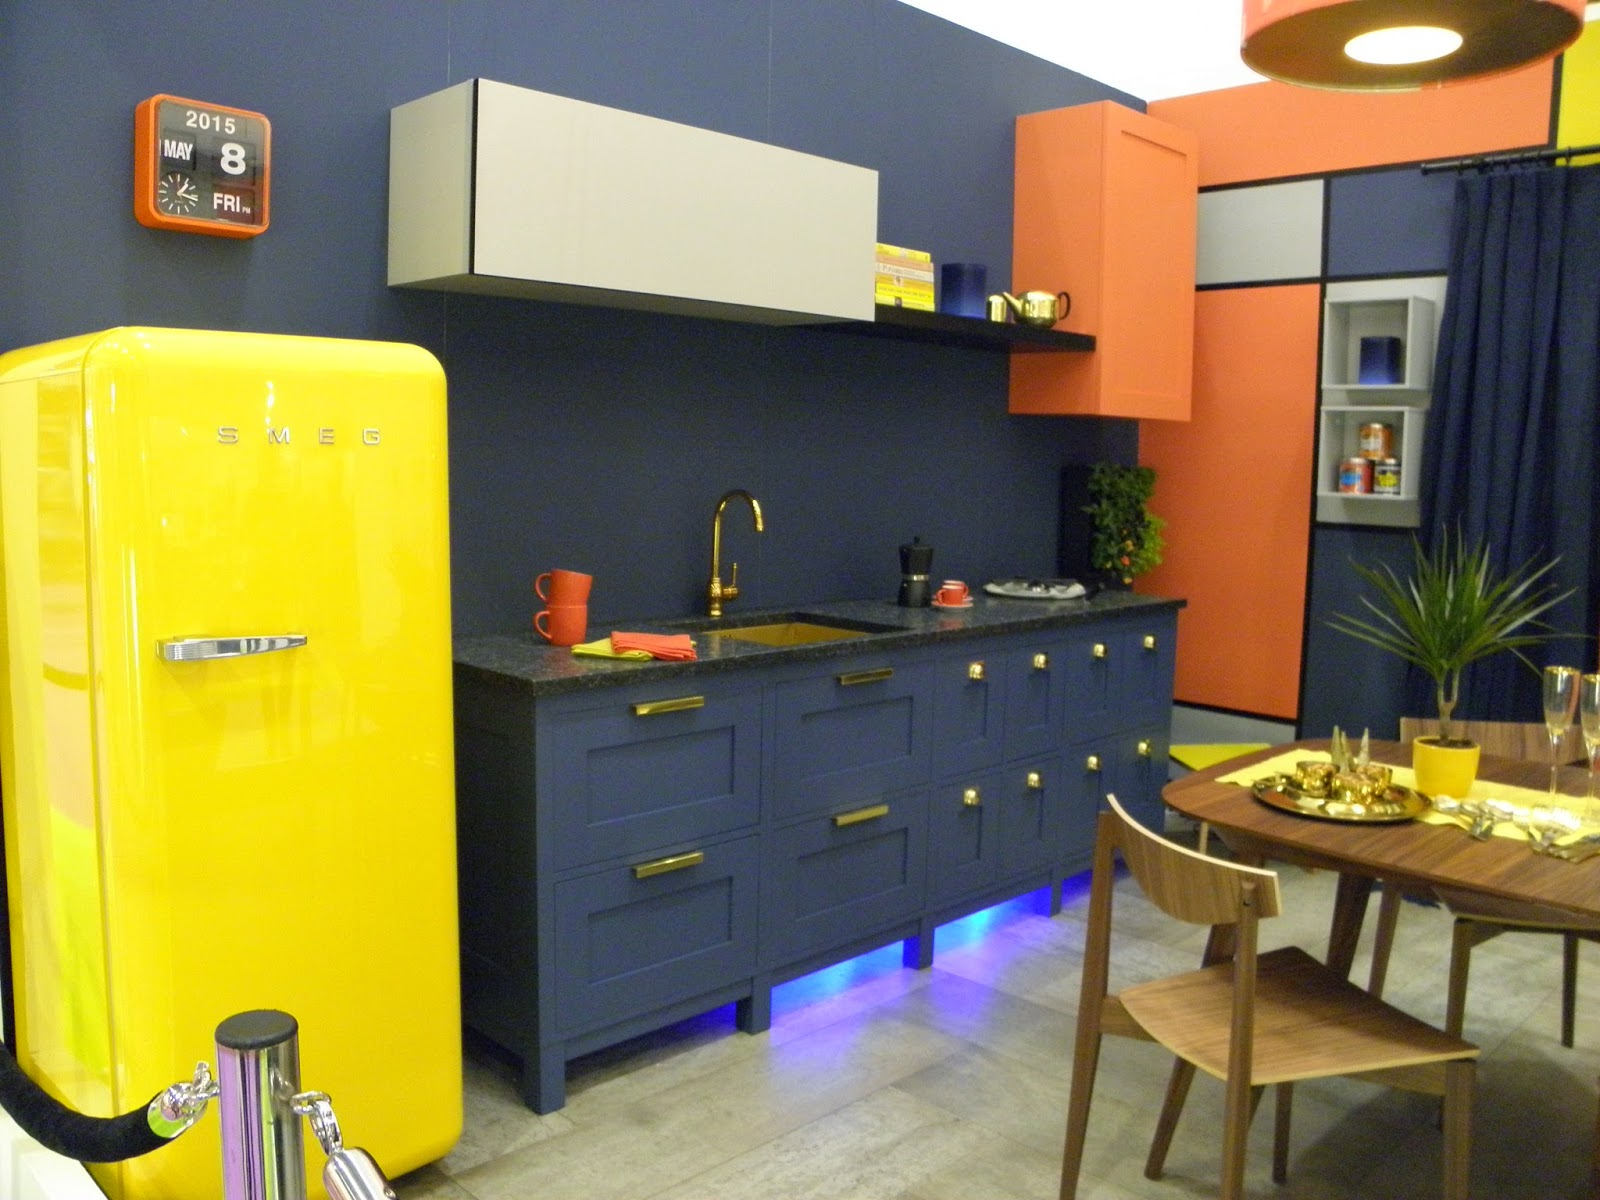 LIFESTYLE Grand Designs Live 2015 GEEK GETS GLAM